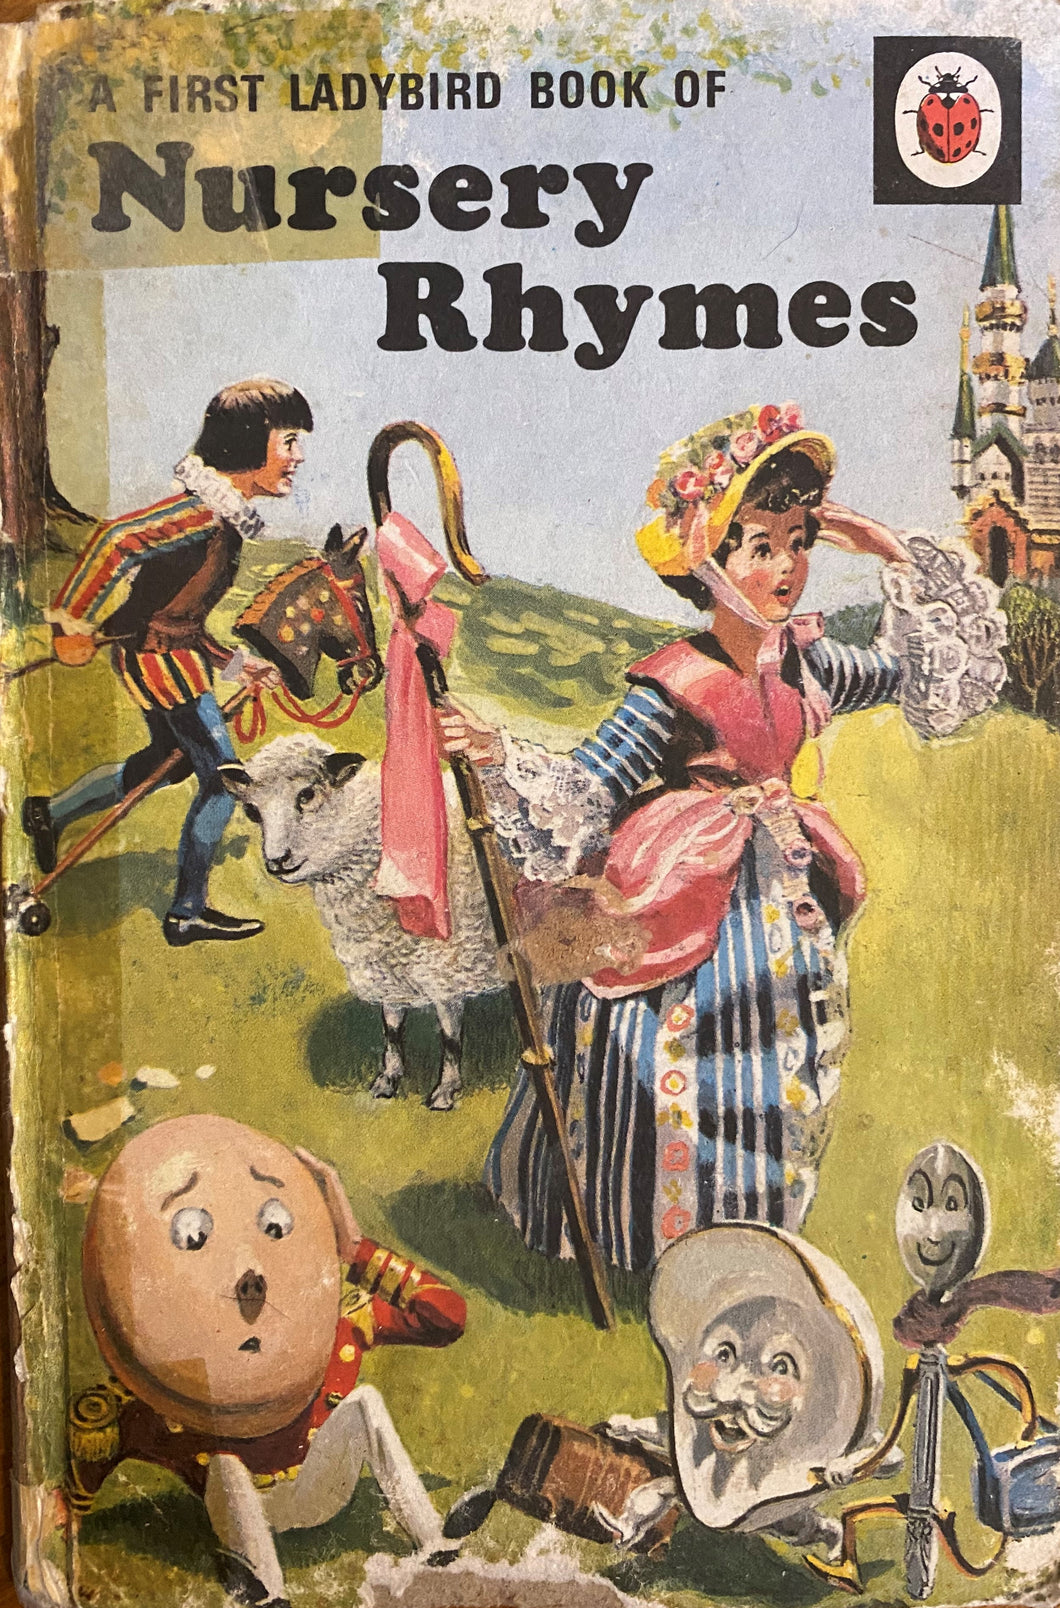 First Ladybird Book of Nursery Rhymes (1 January 1984 - 31 December 1985) * damaged cover